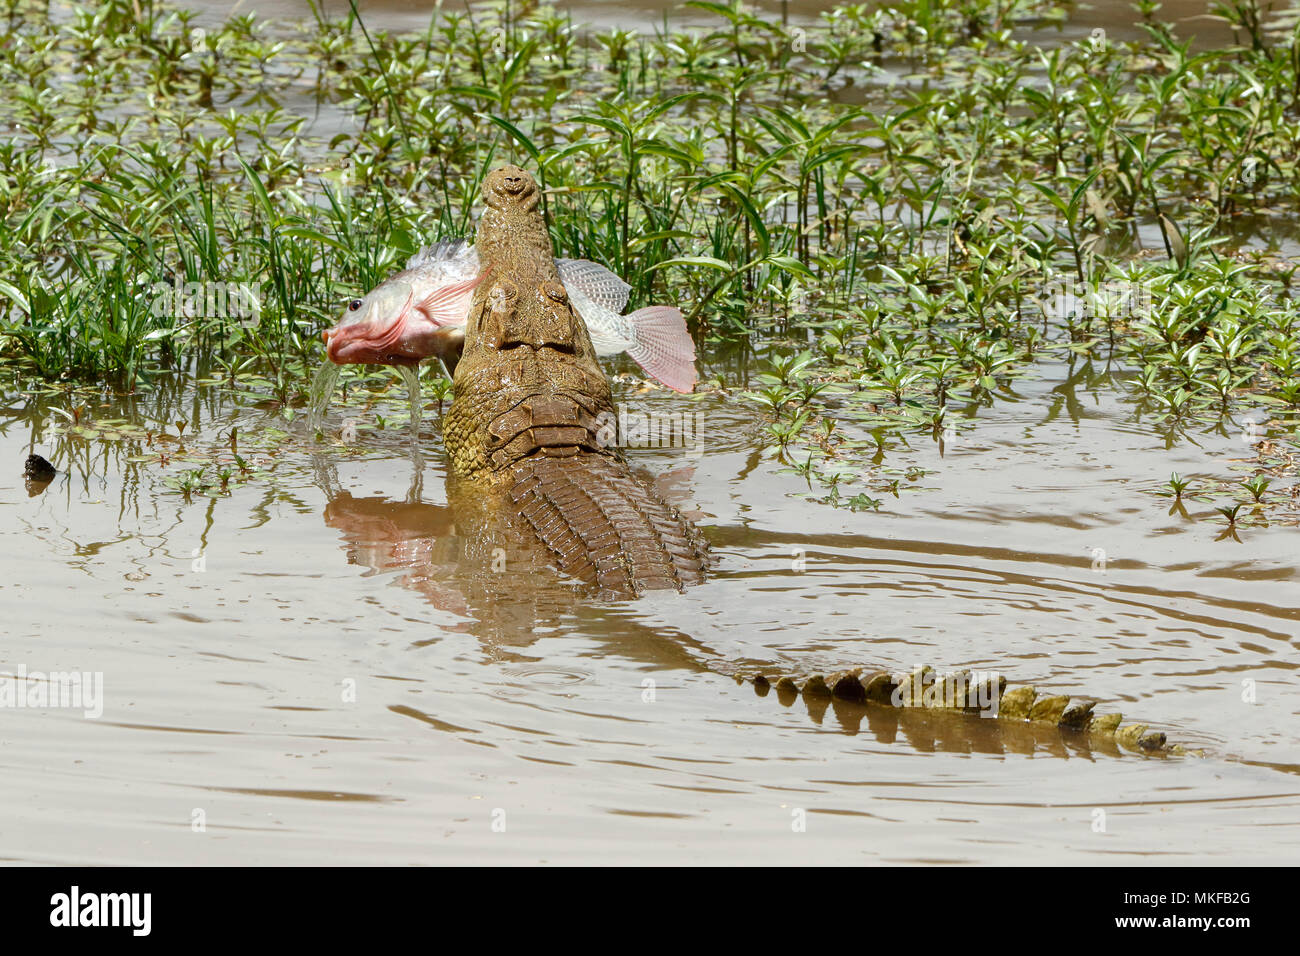 Nile Crocodile (Crocodylus niloticus) having caught a fish, Kruger NP, South Africa - Stock Image